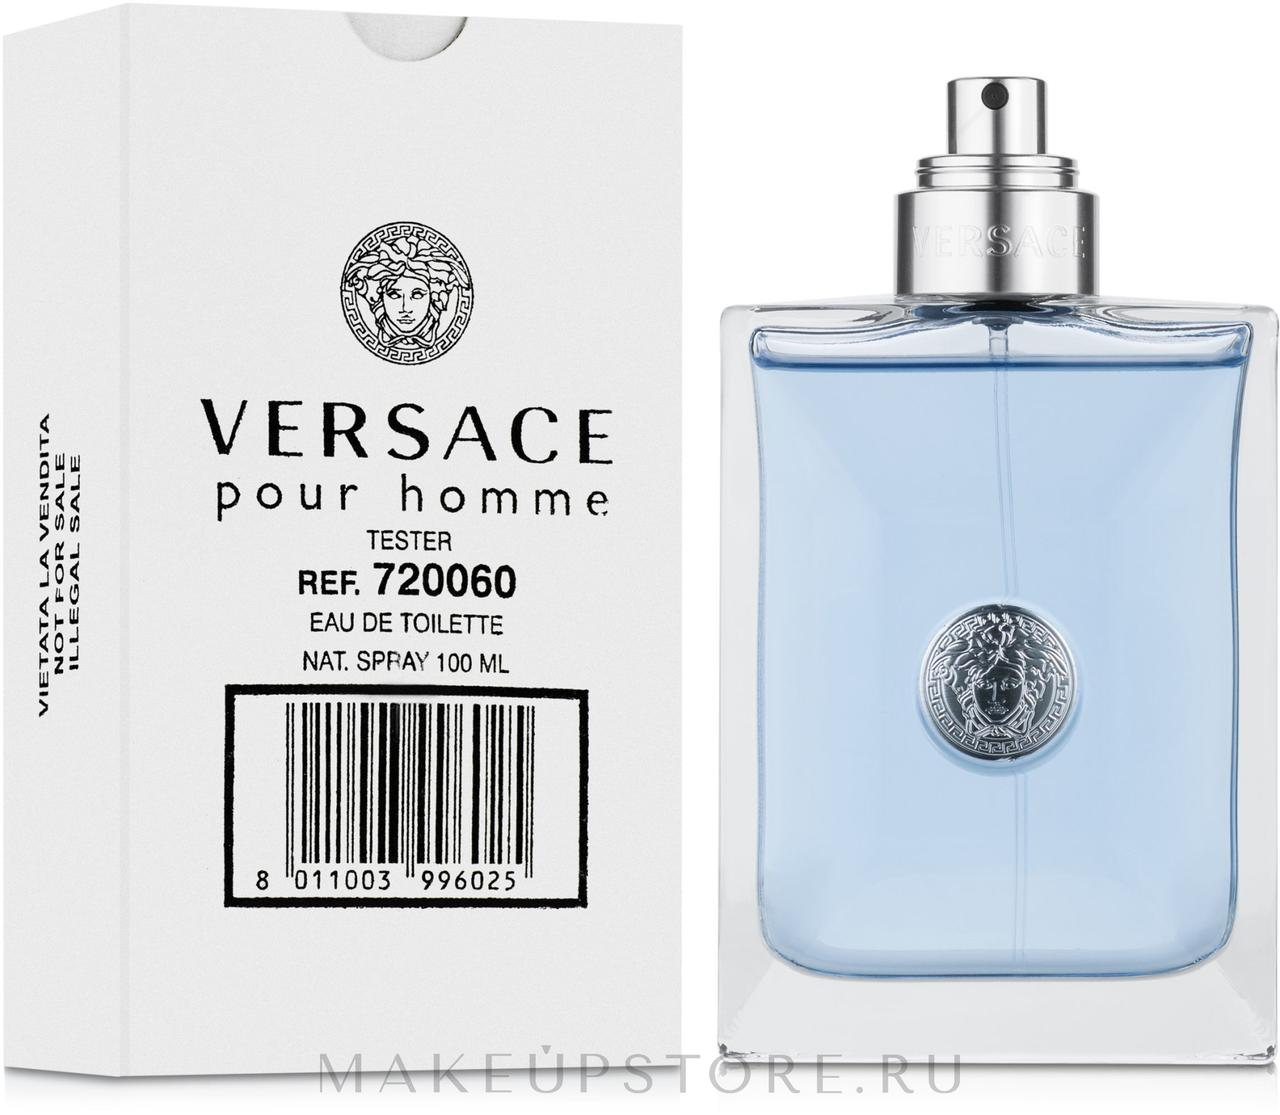 Versace Pour Homme edt Tester 100ml